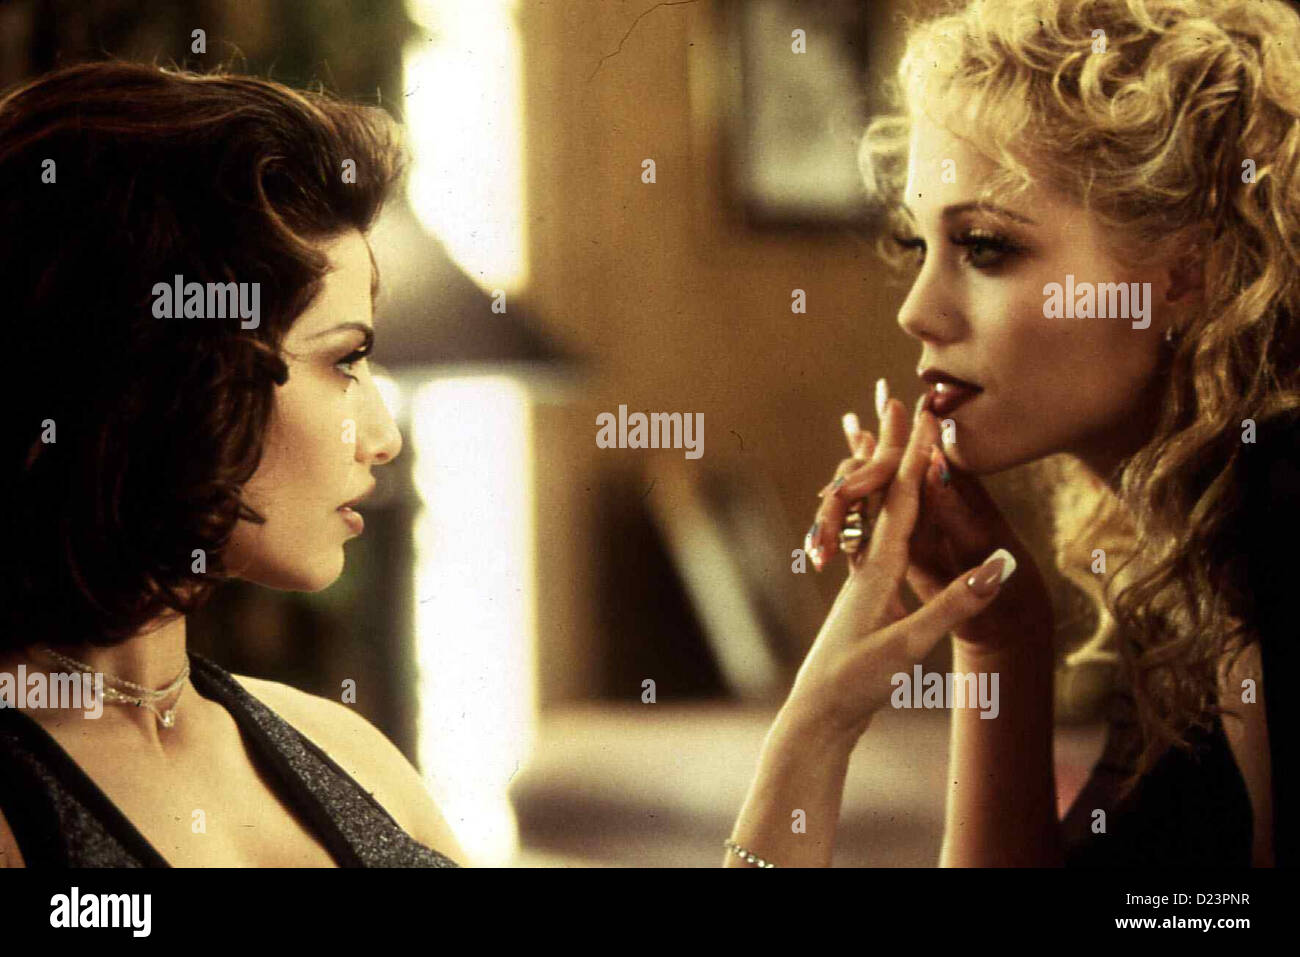 Elizabeth berkley stock photos elizabeth berkley stock images alamy showgirls showgirls gina gershon elizabeth berkley zwischen cristal gina gershonl und voltagebd Image collections